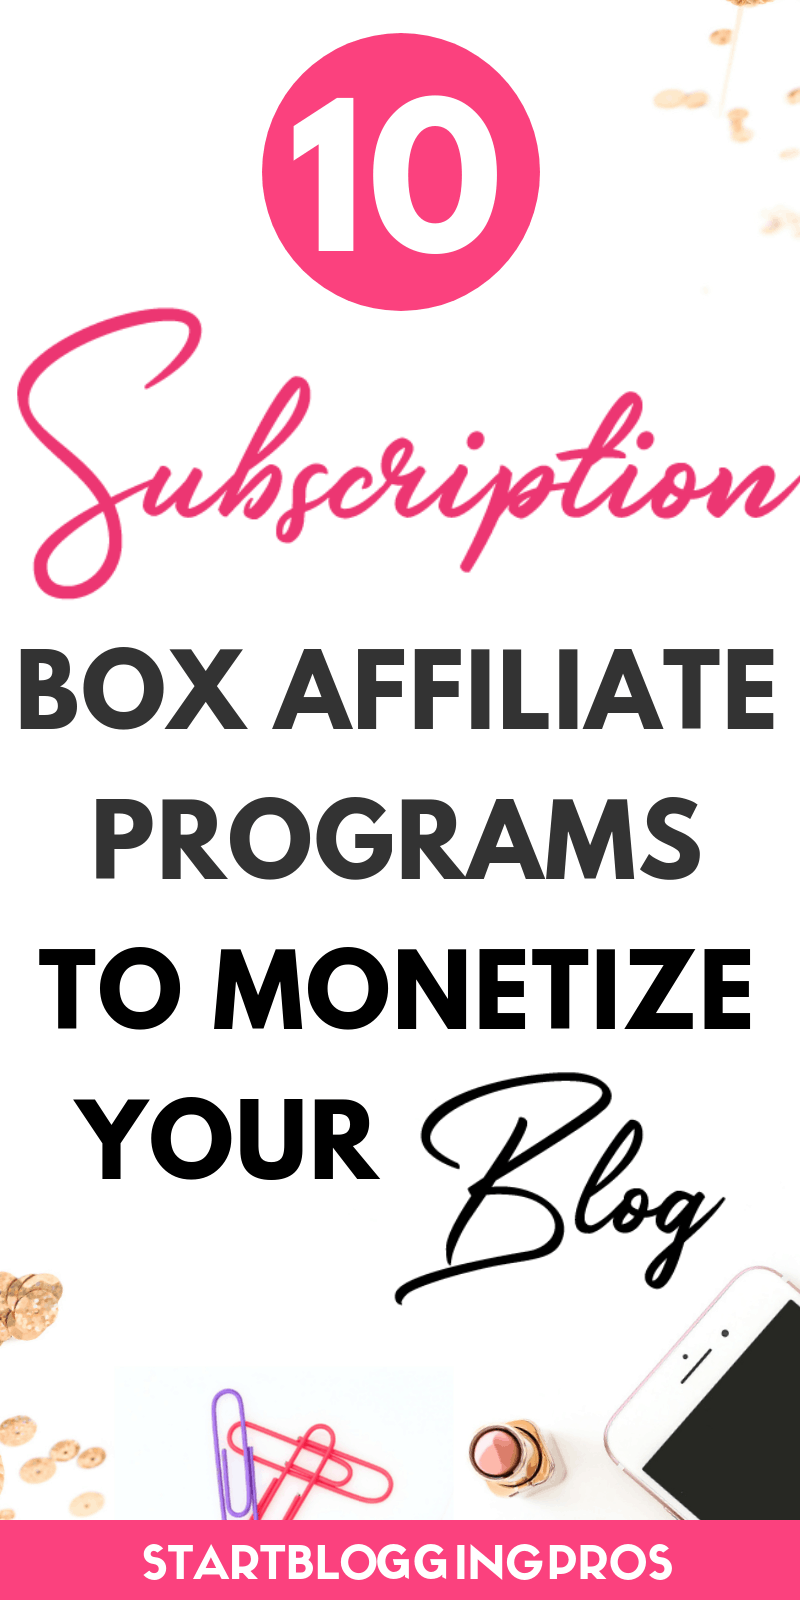 Top subscription box affiliate programs to monetize your blog make money blogging fabfitfun affiliate program join subscription box affliates 10 ways to monetize blog niches montize my niche make money from blogging bloggers starting a blog make money blogging seo startbloggingpros.com